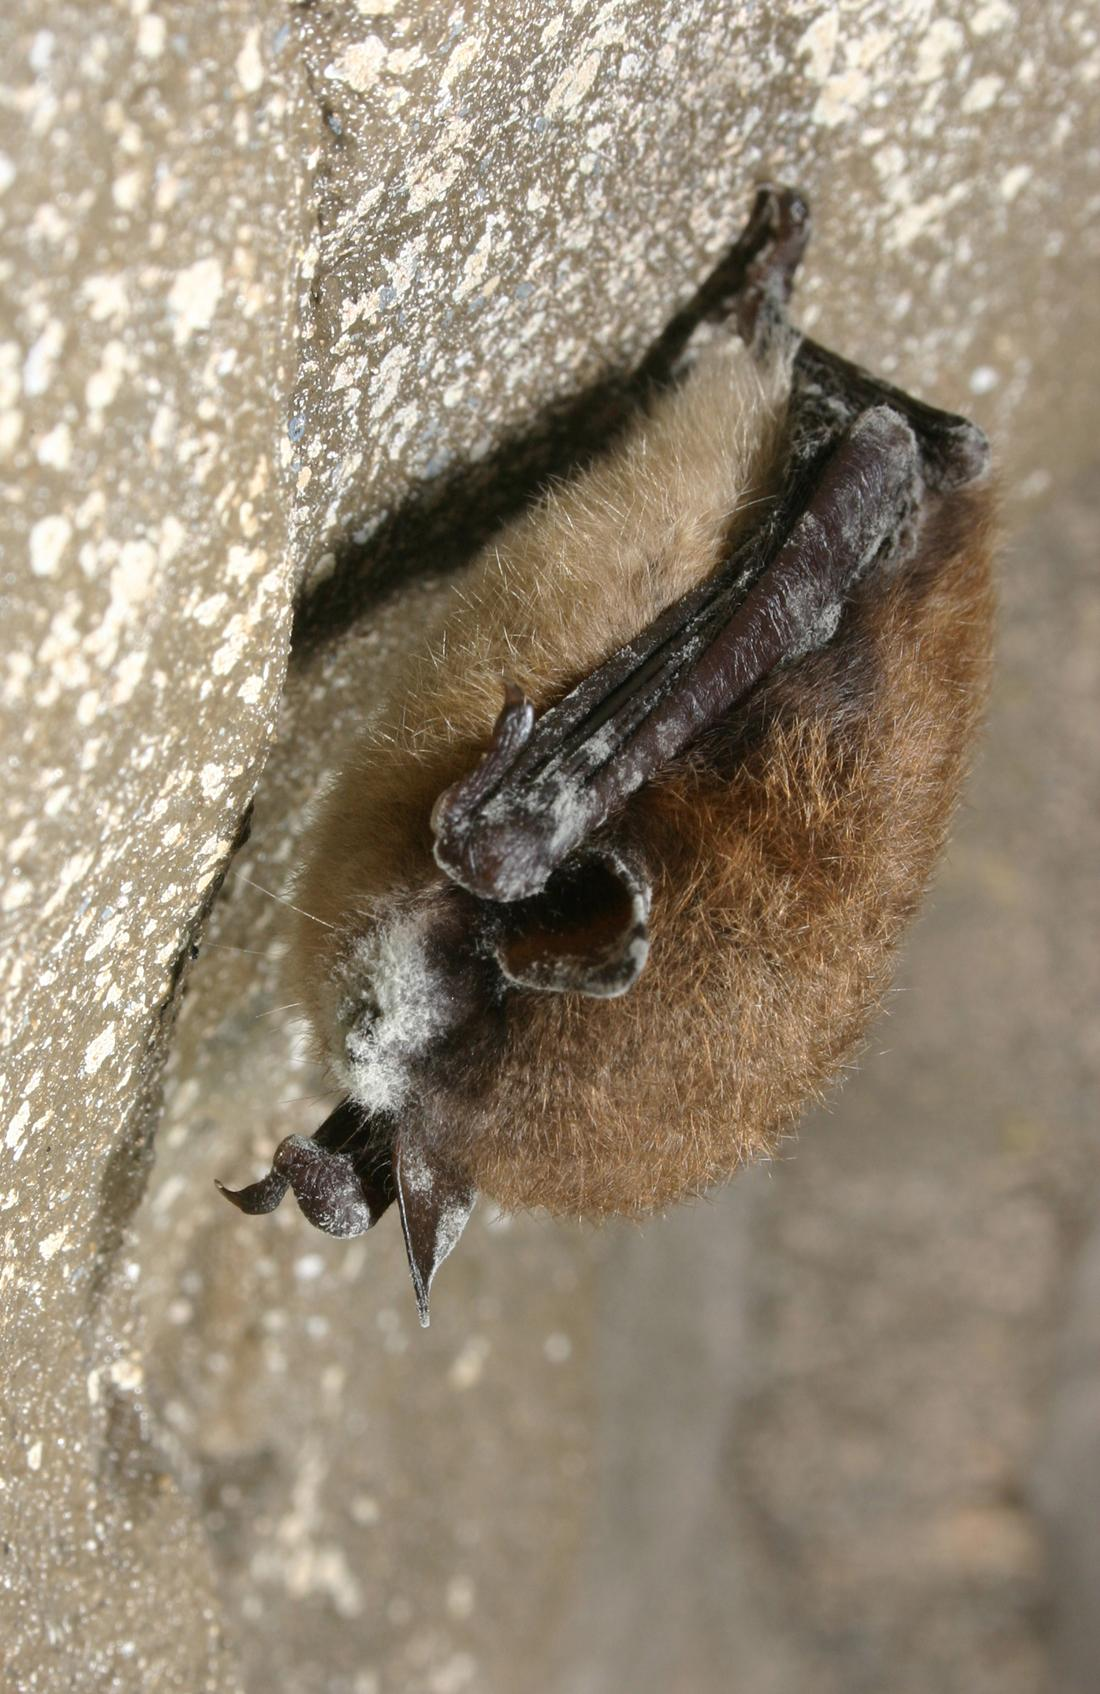 bat with WNS photo